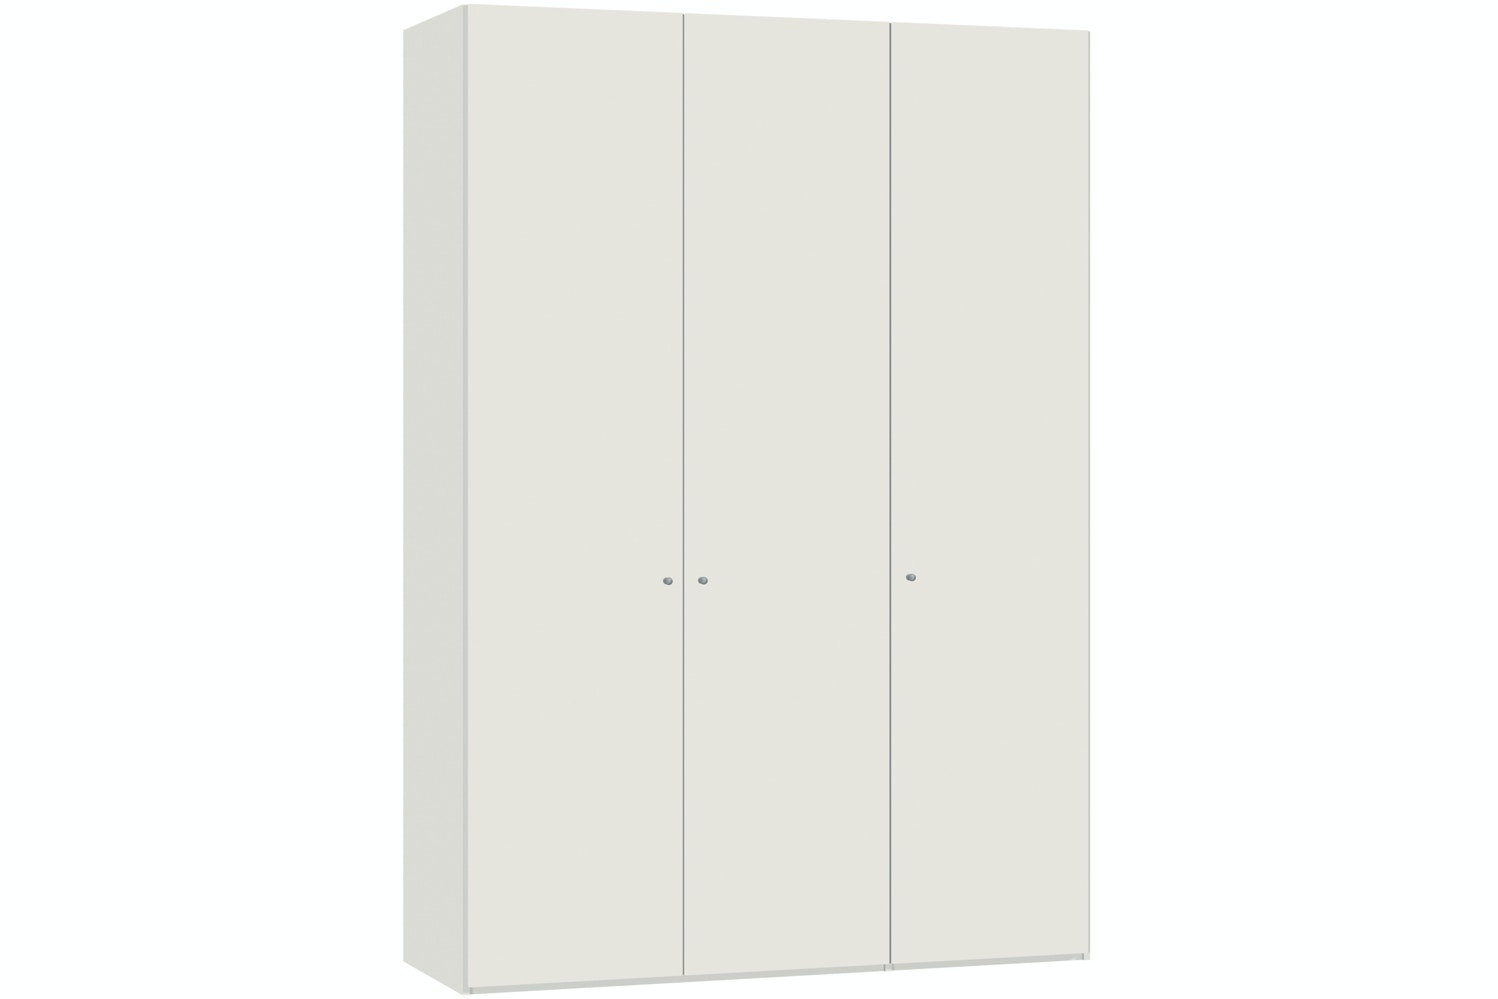 Emer Hinged 3 Door Wardrobe 152Cm | White